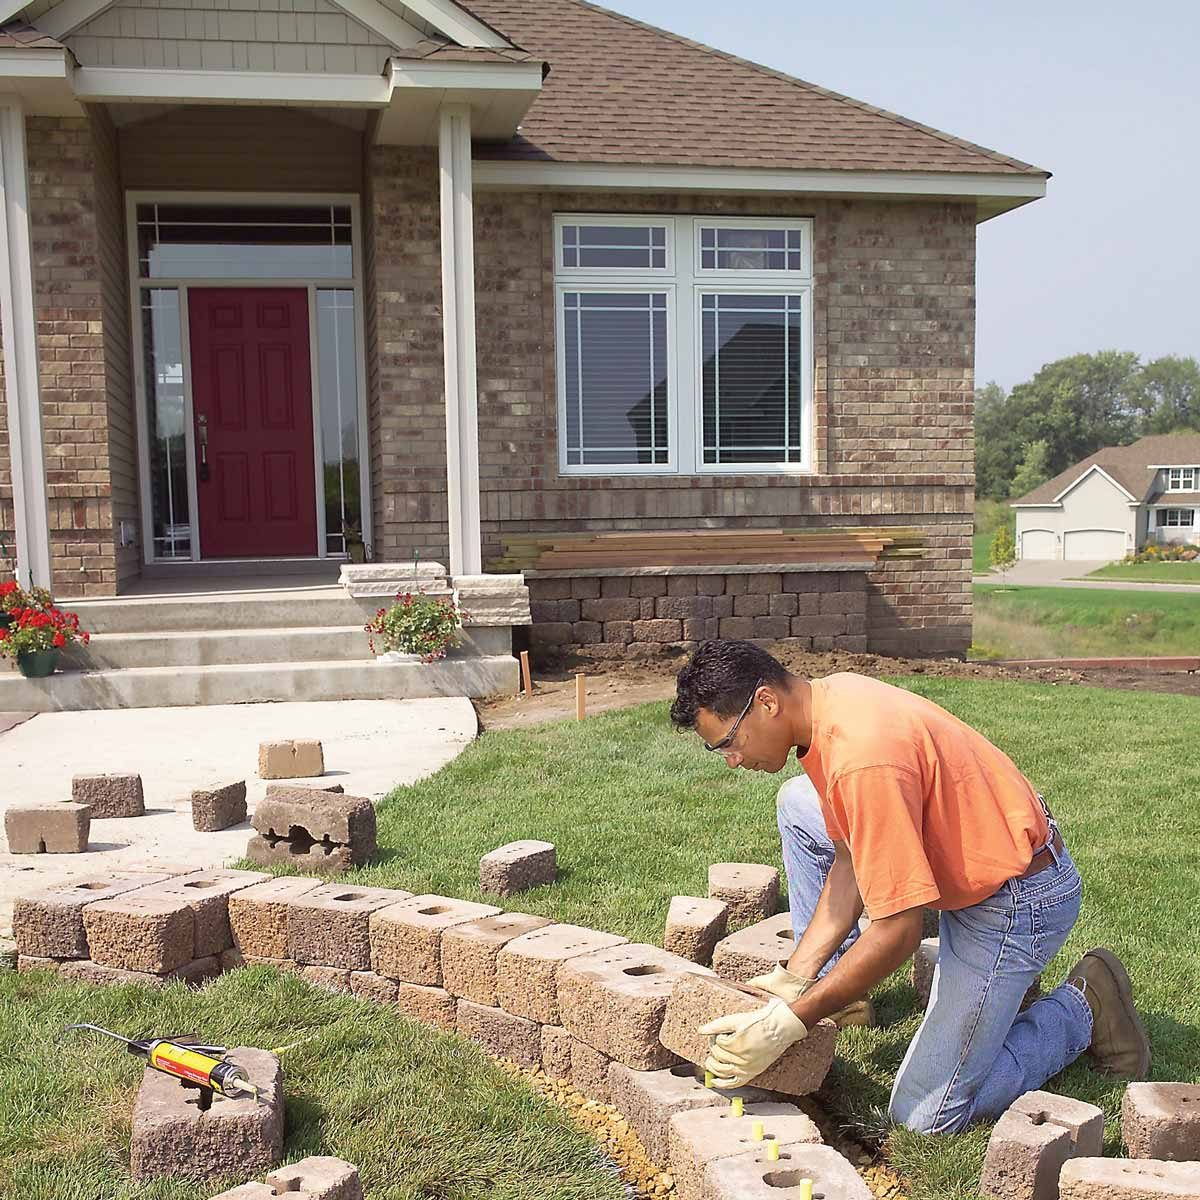 kneeling man adds landscaping stone to front yard